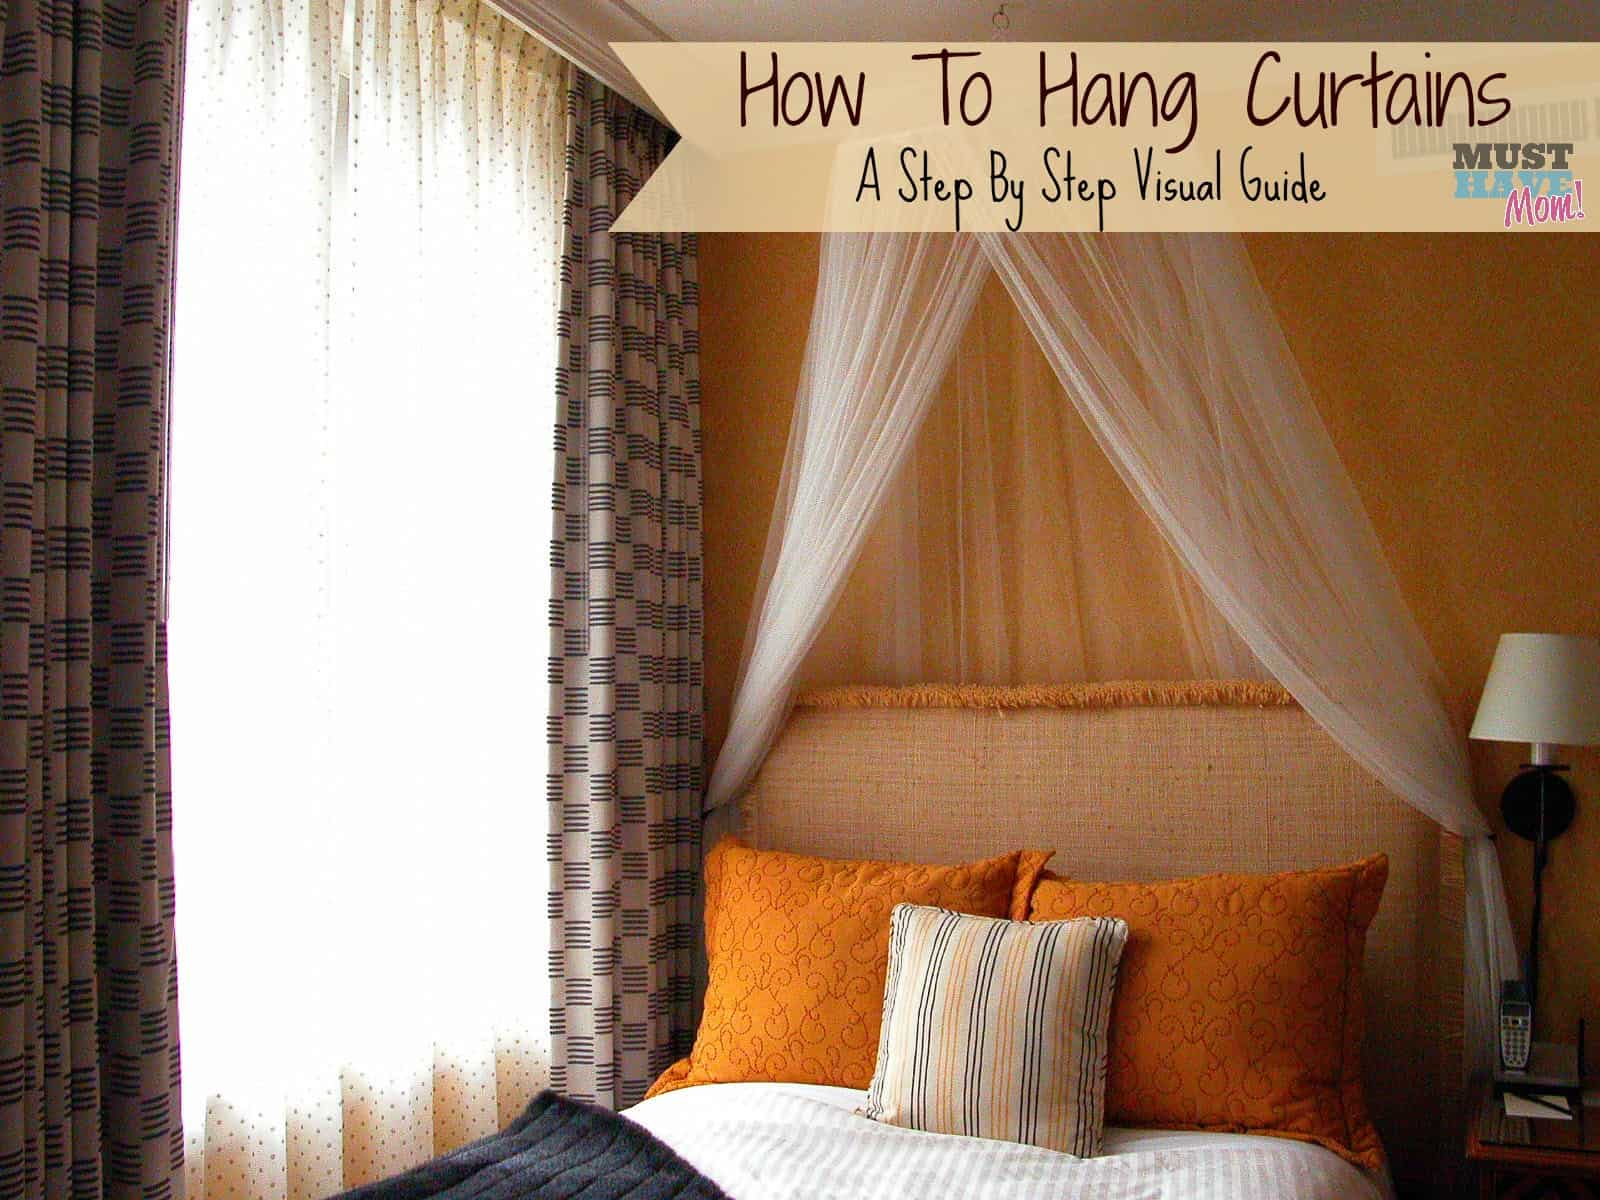 How To Hang Curtains A Step By Step Visual Guide